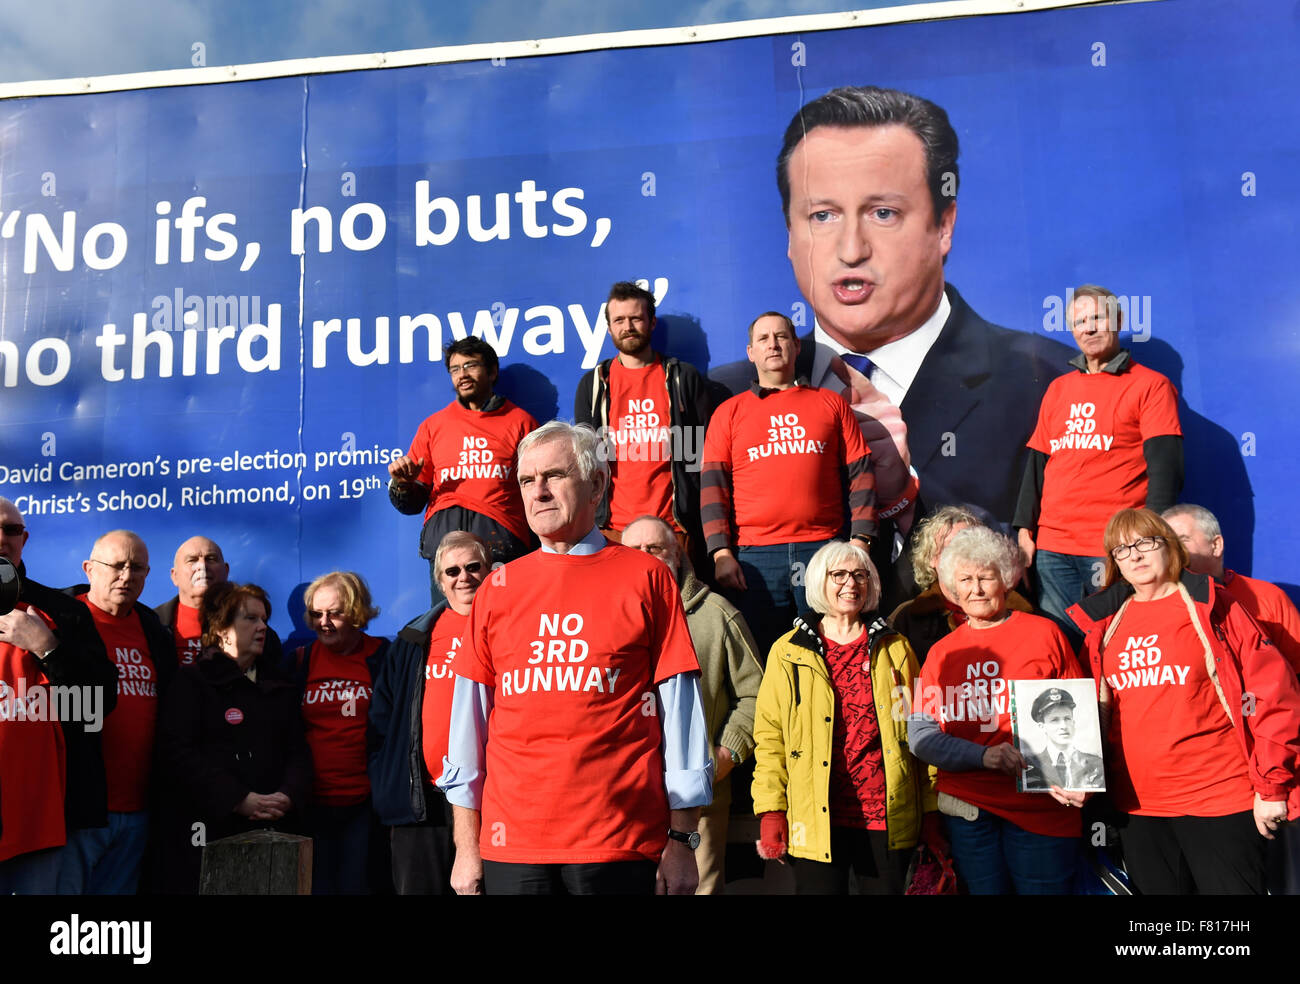 John McDonnelL MP attends greets the new 3rd Runway Protest ADVAN at harmondsworth Village Near Heathrow Airport. - Stock Image